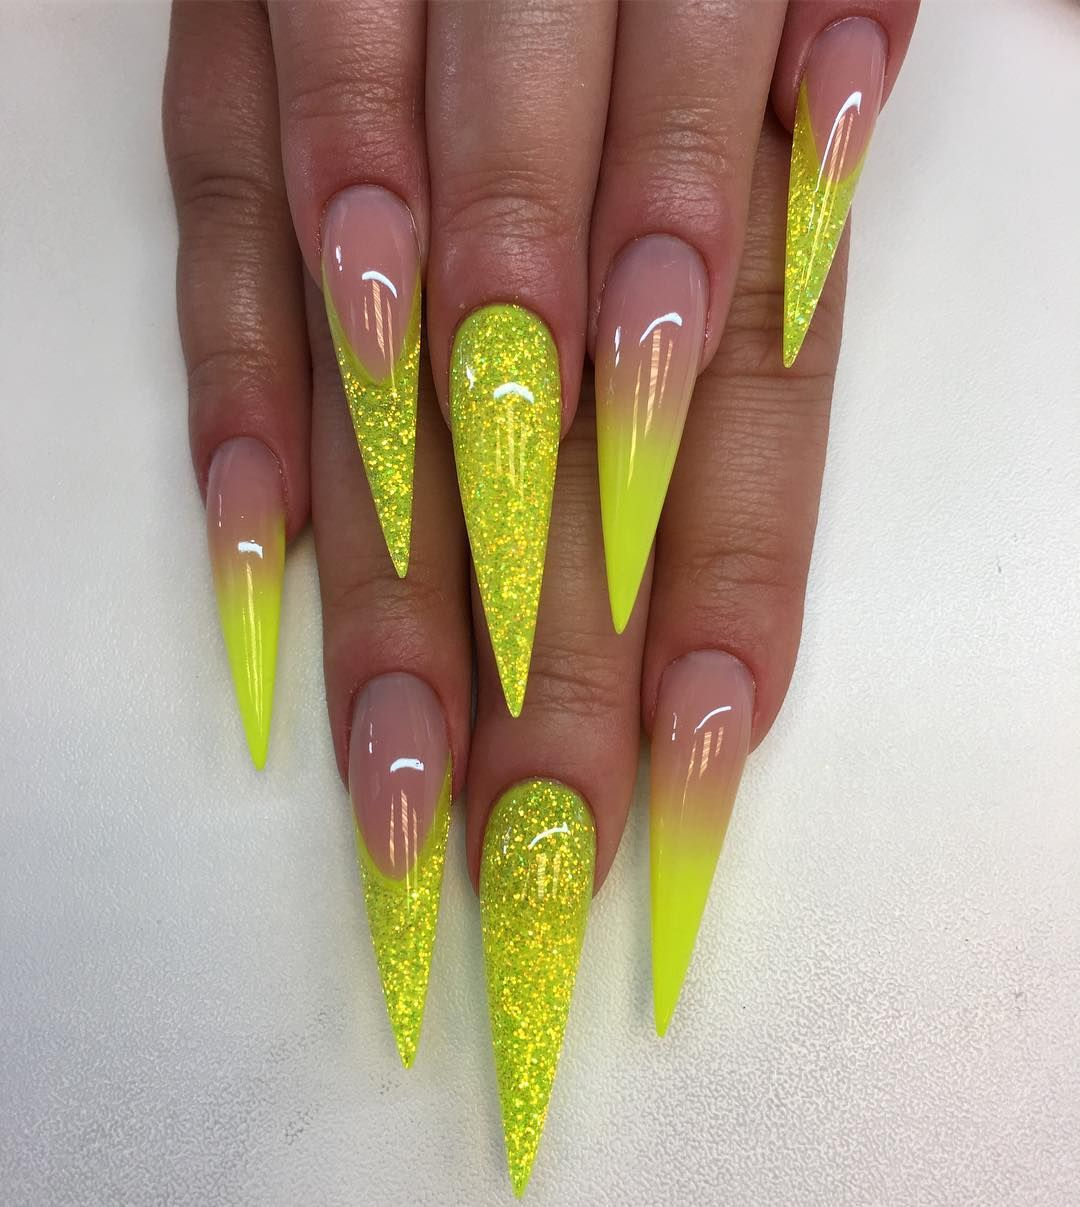 Pin by Julia on Sparkly Nails | Pinterest | Neon yellow, Ombre and Neon